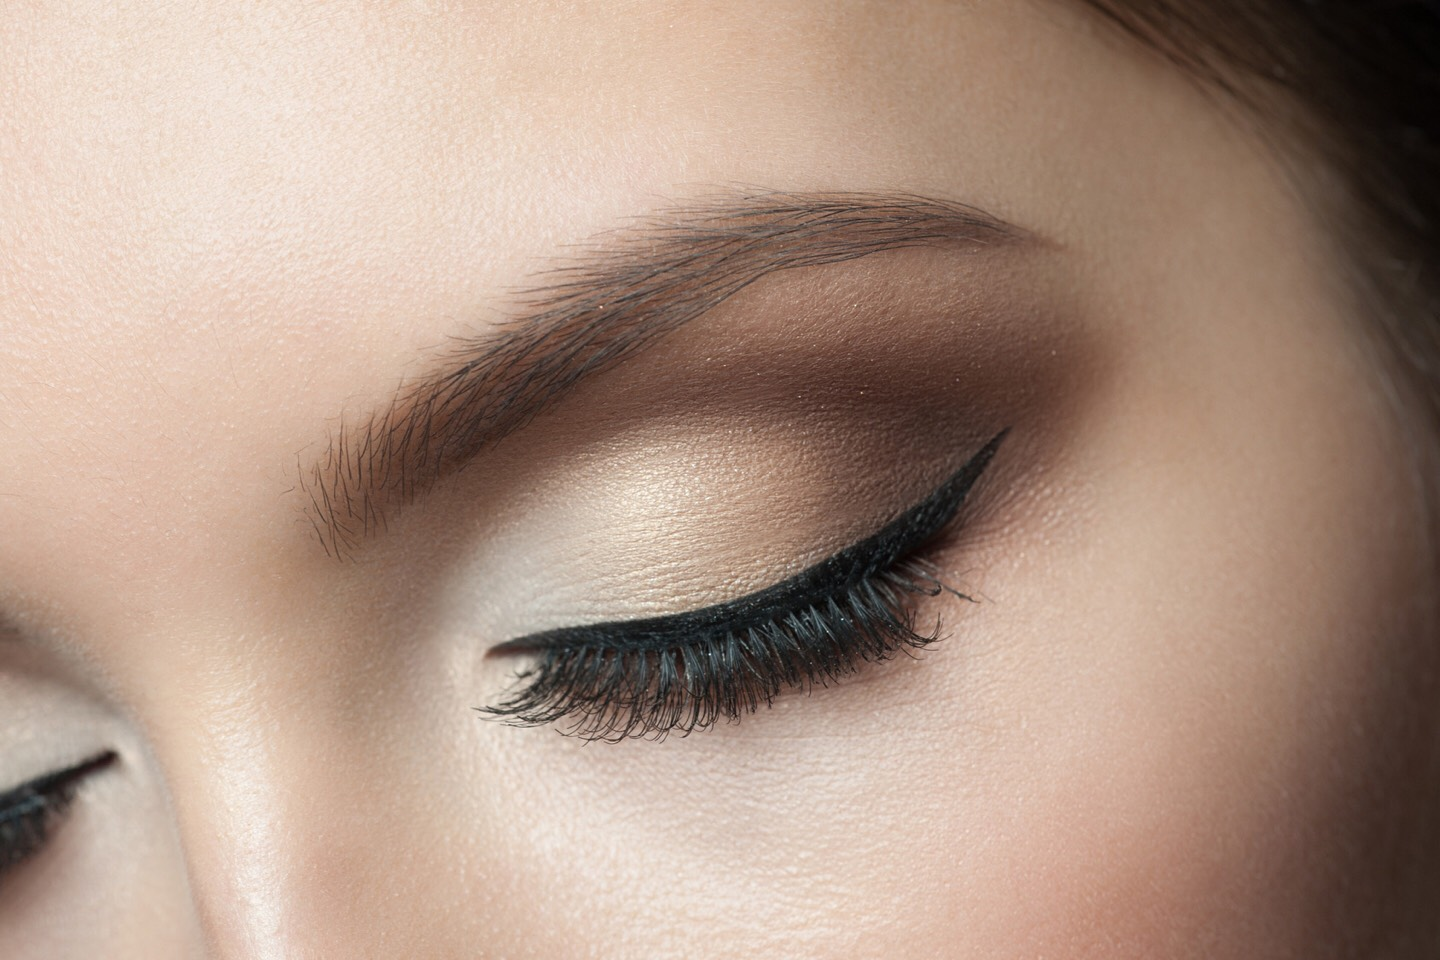 5) To tame unruly eyebrows